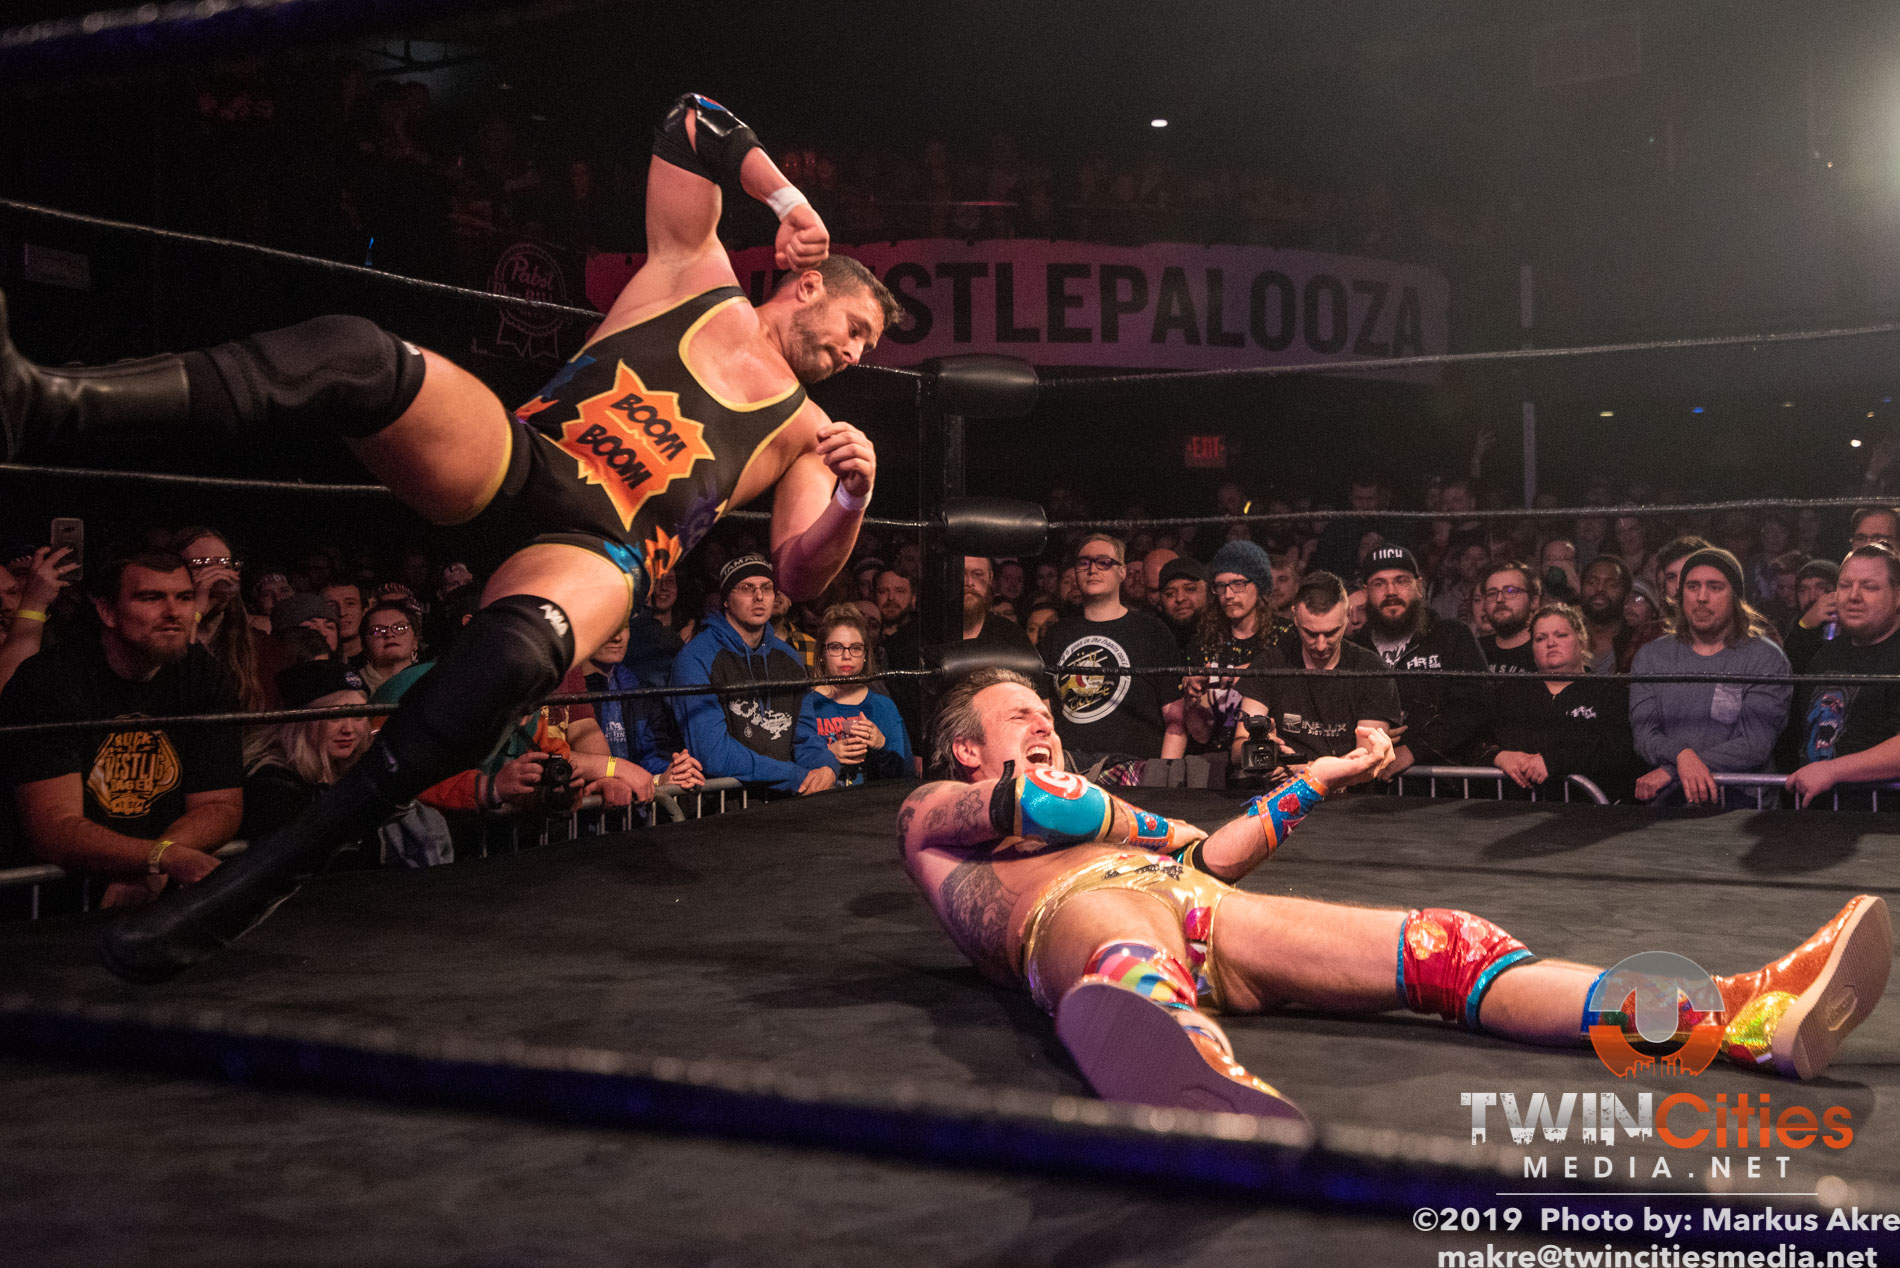 Wrestlepalooza - Match 3-8